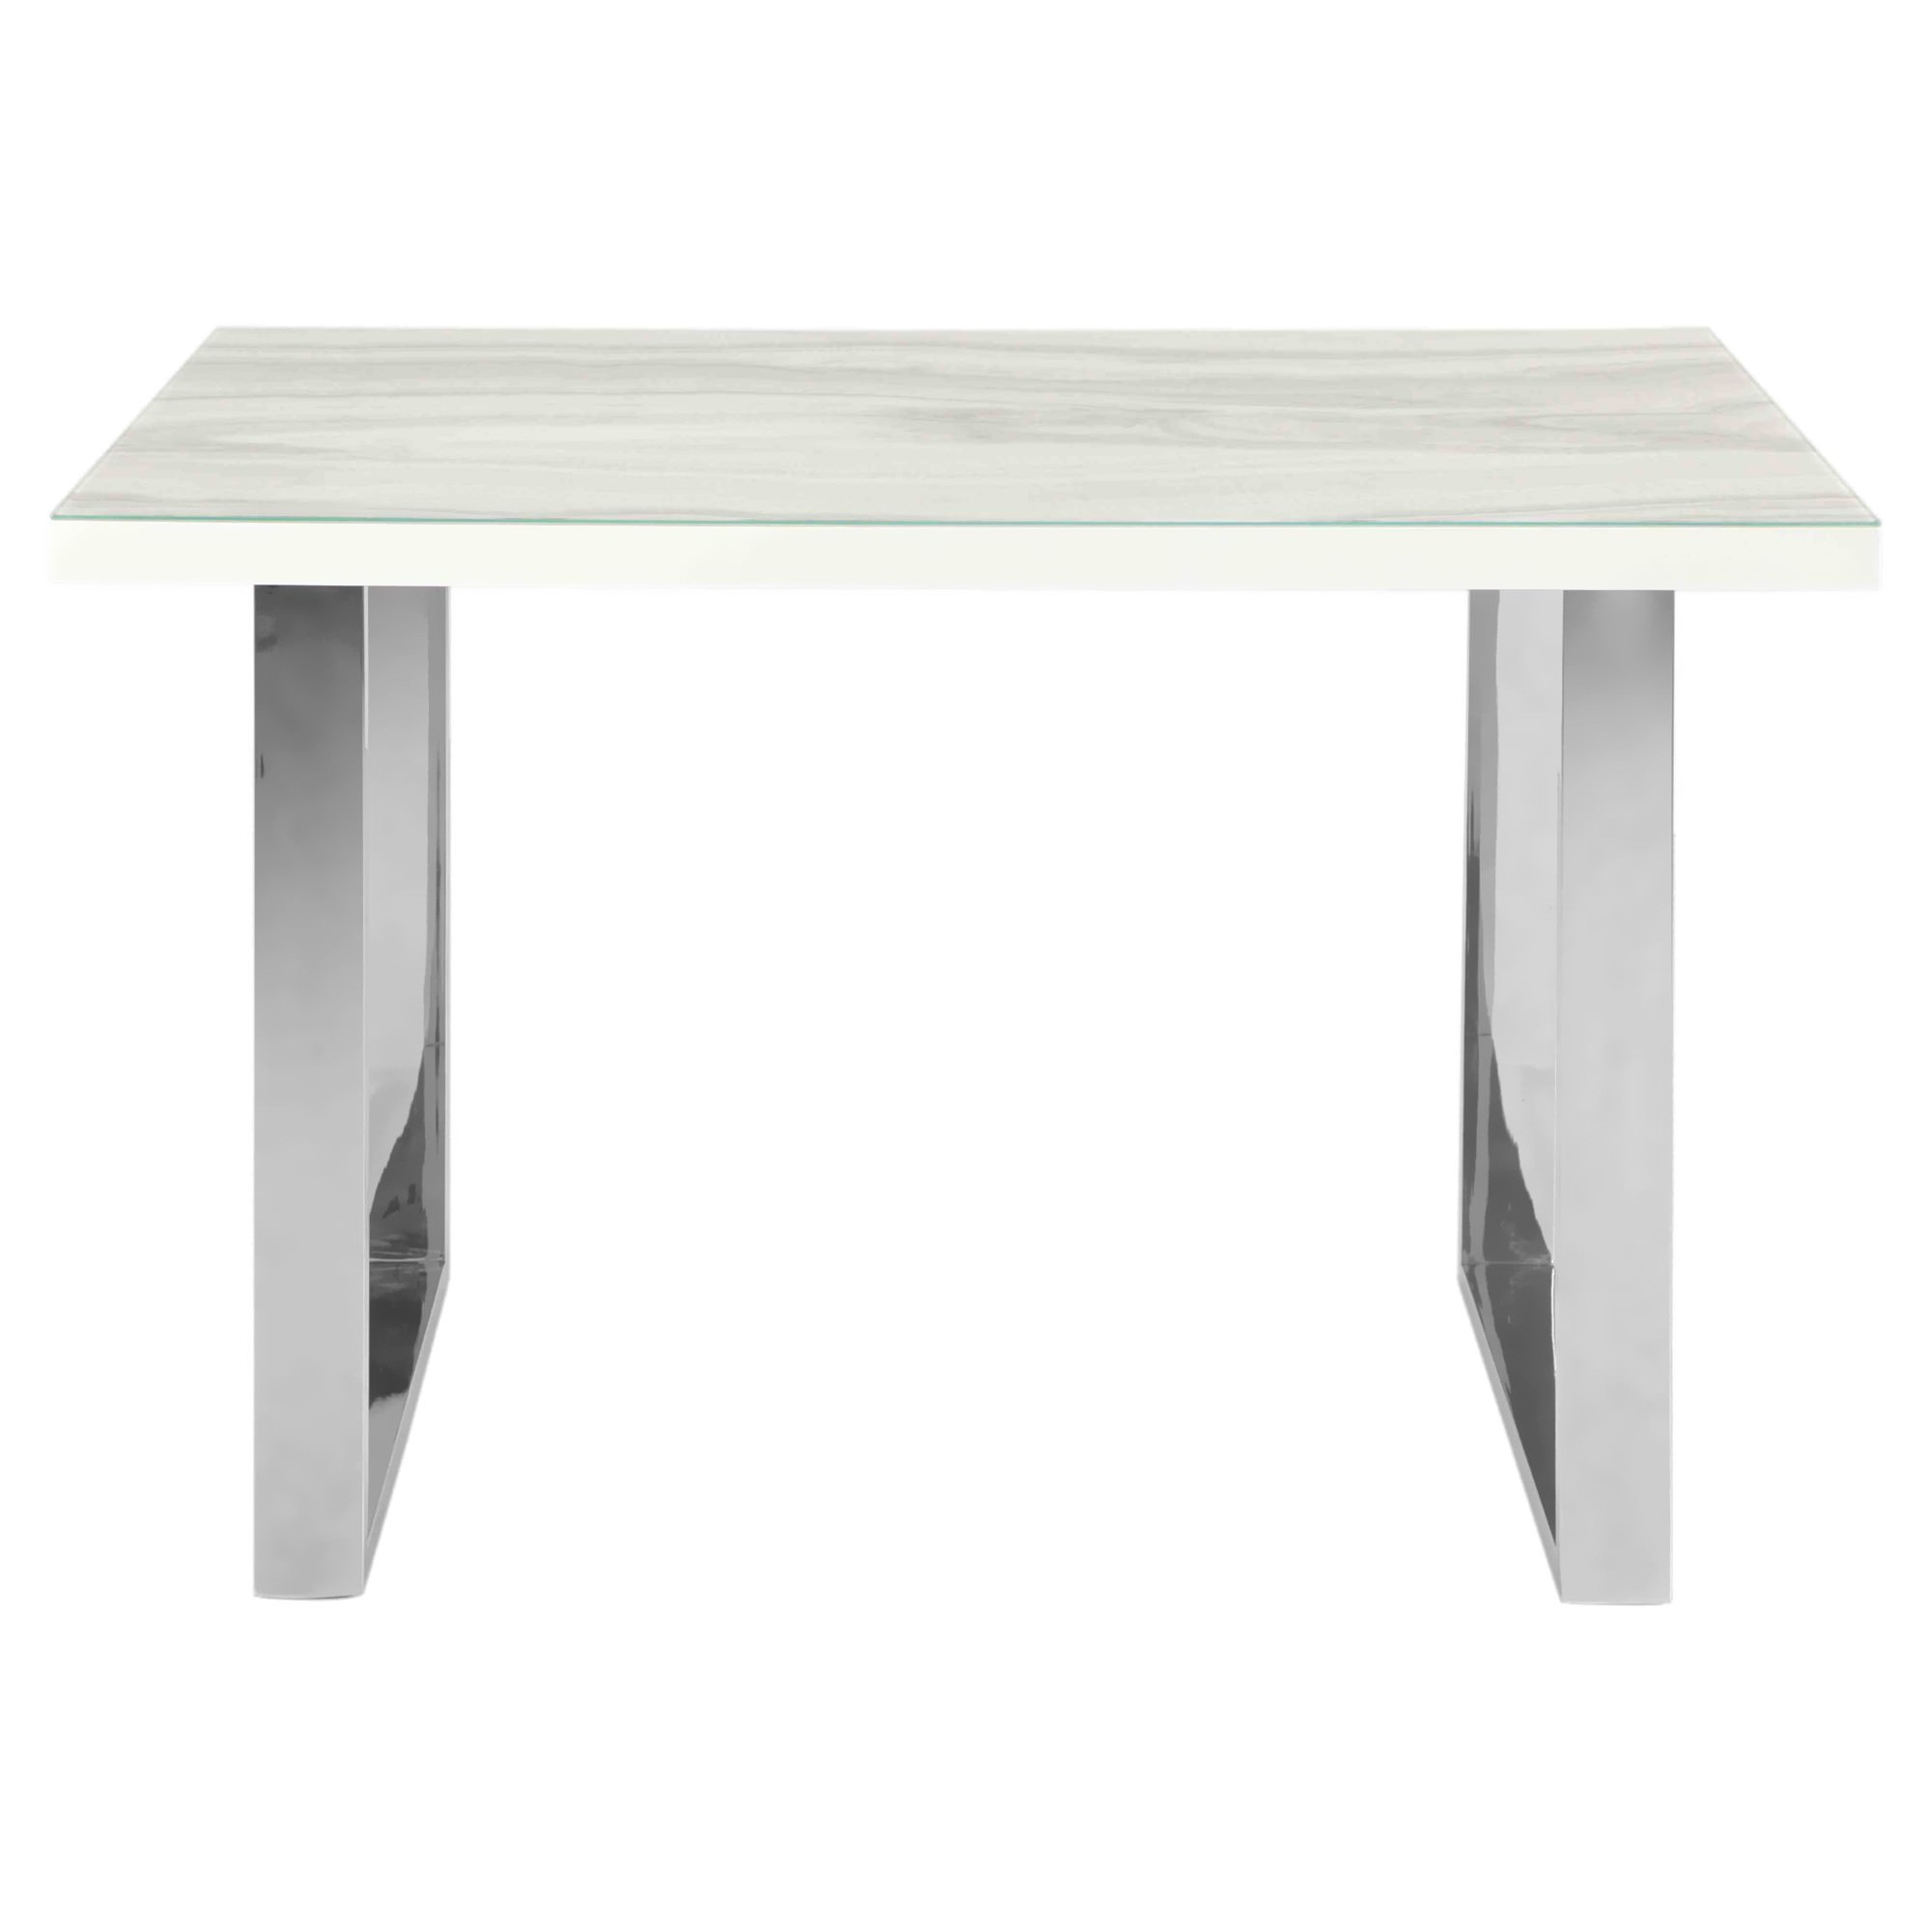 Luna Tempered Glass Topped Dining Table, 180cm